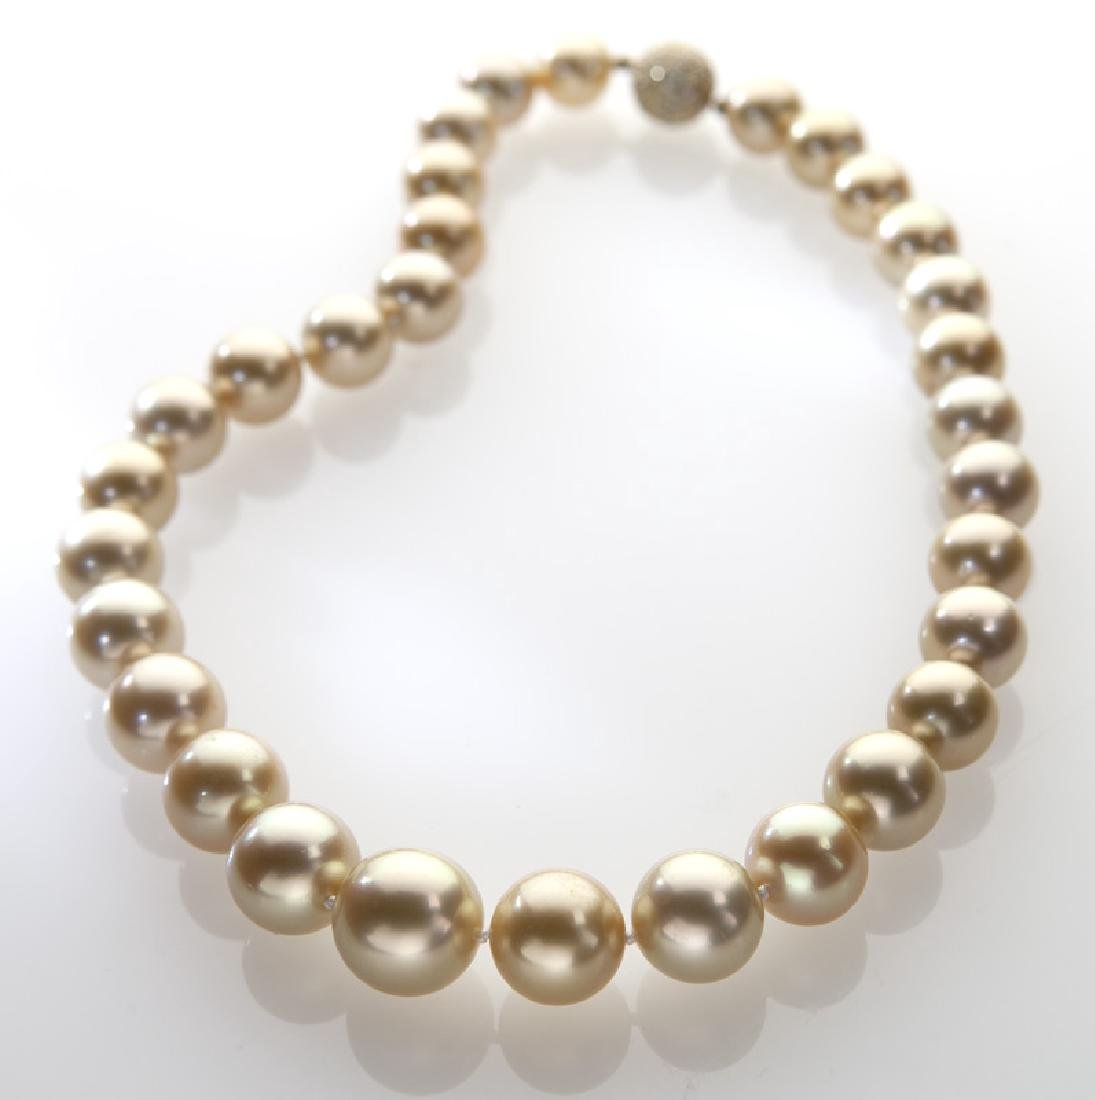 18K, diamond and golden South Sea pearl necklace